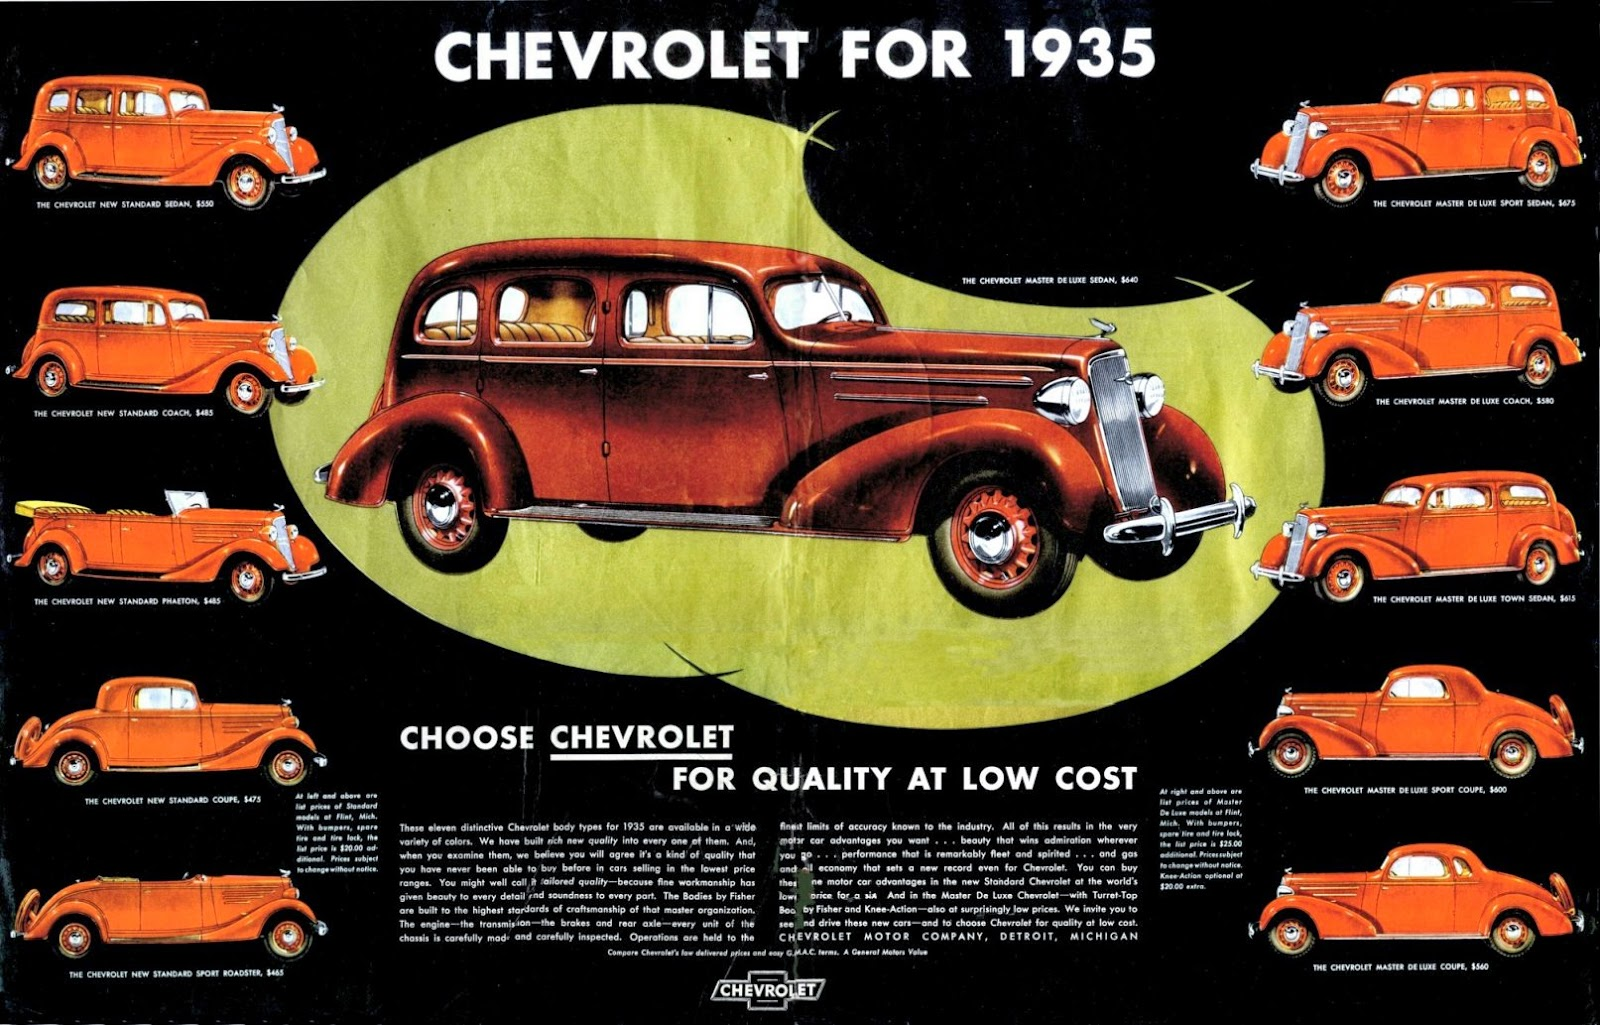 OLD INDONESIAN VEHICLES: Chevrolet 1935